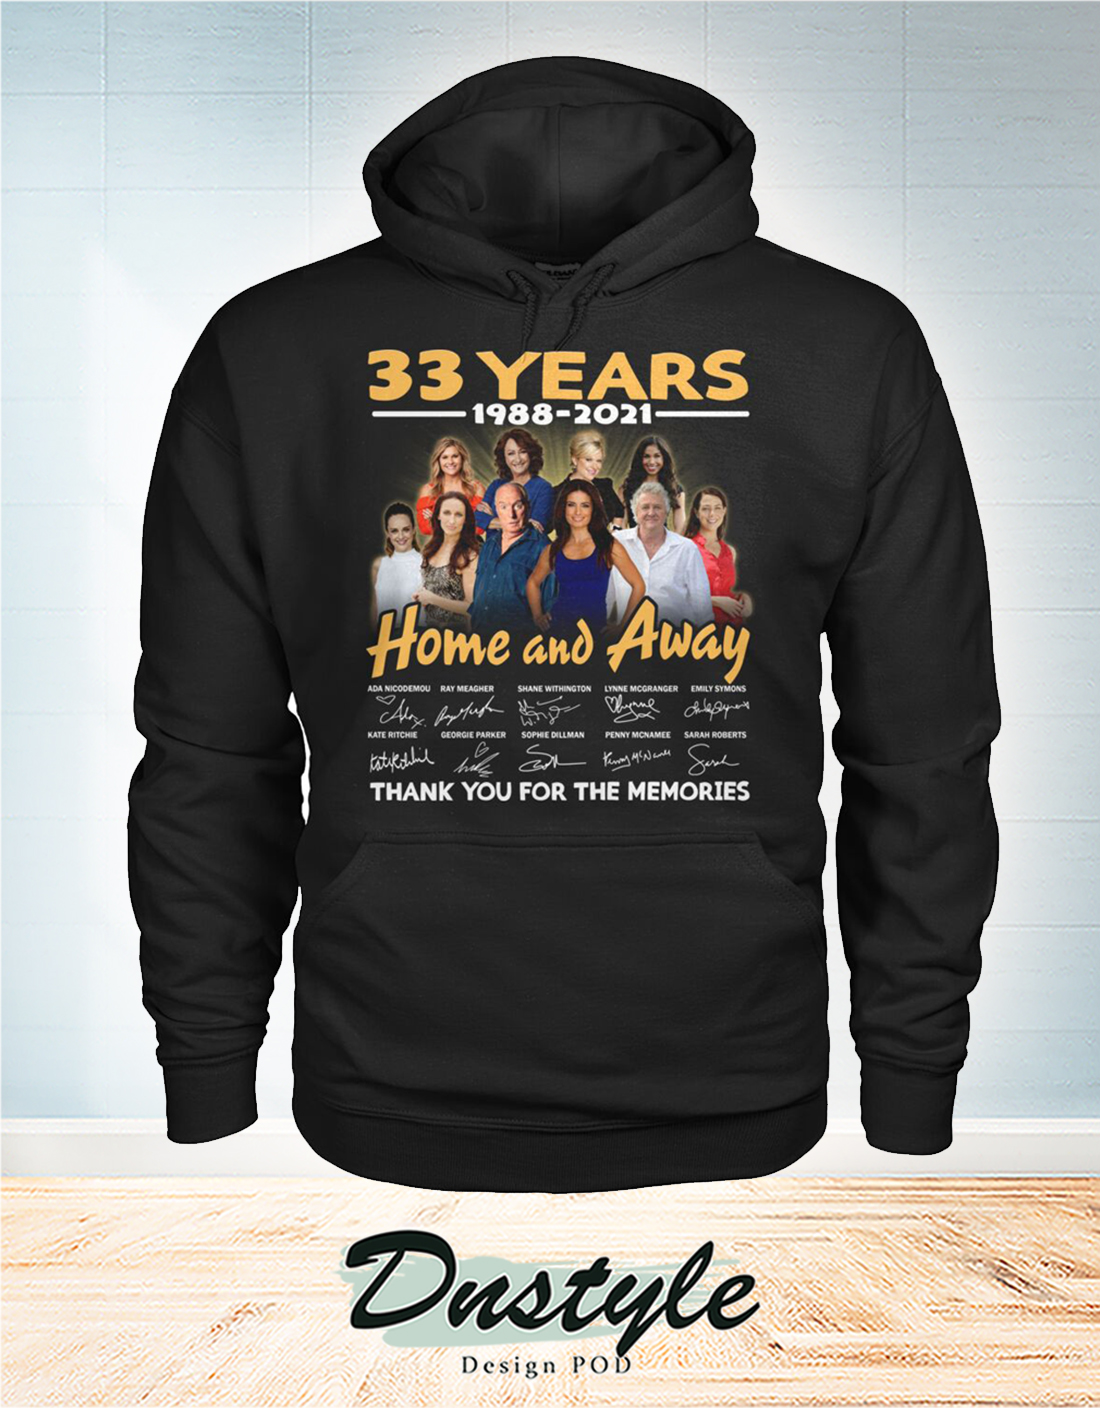 Home and away 33 years thank you for the memories hoodie